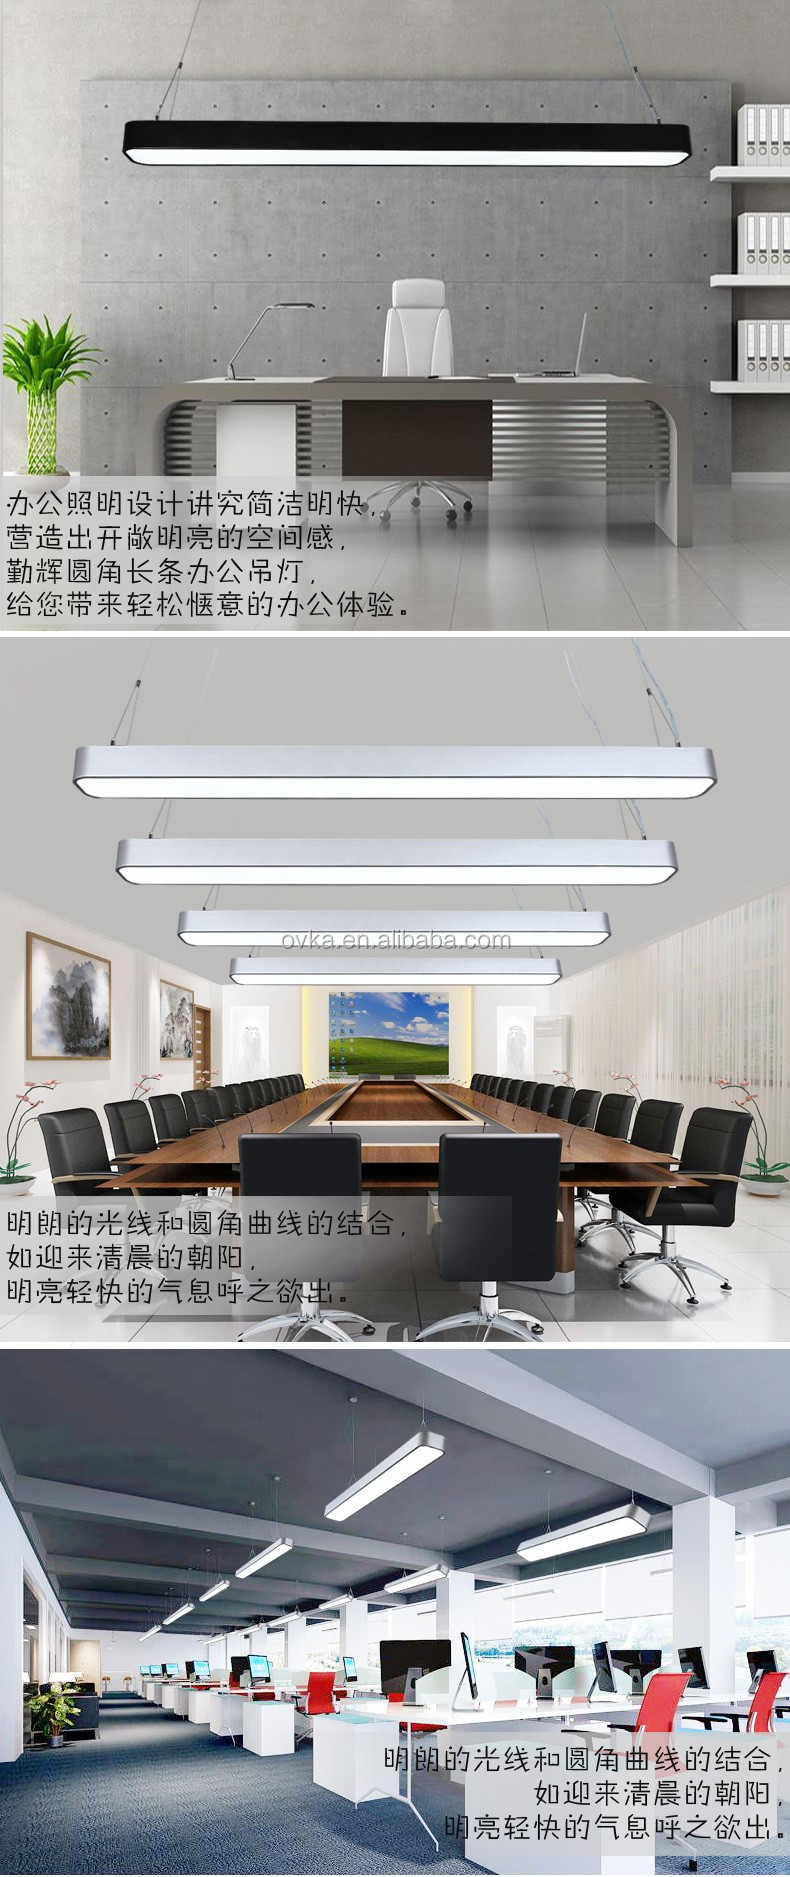 18w 36w ip65 modern aluminium strip led office hanging light 18w 36w ip65 modern aluminium strip led office hanging light office pendant light mozeypictures Image collections